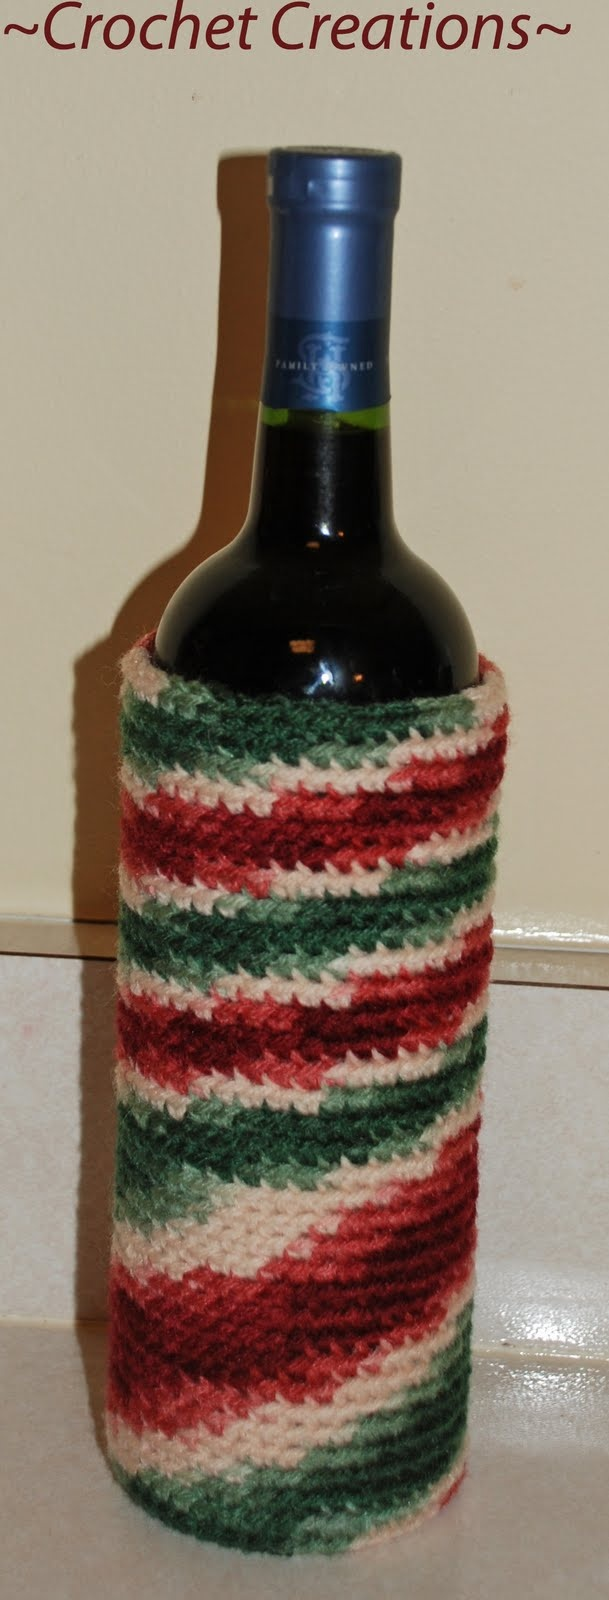 17+ best images about Crochet wine bottle covers on Pinterest Free pattern,...